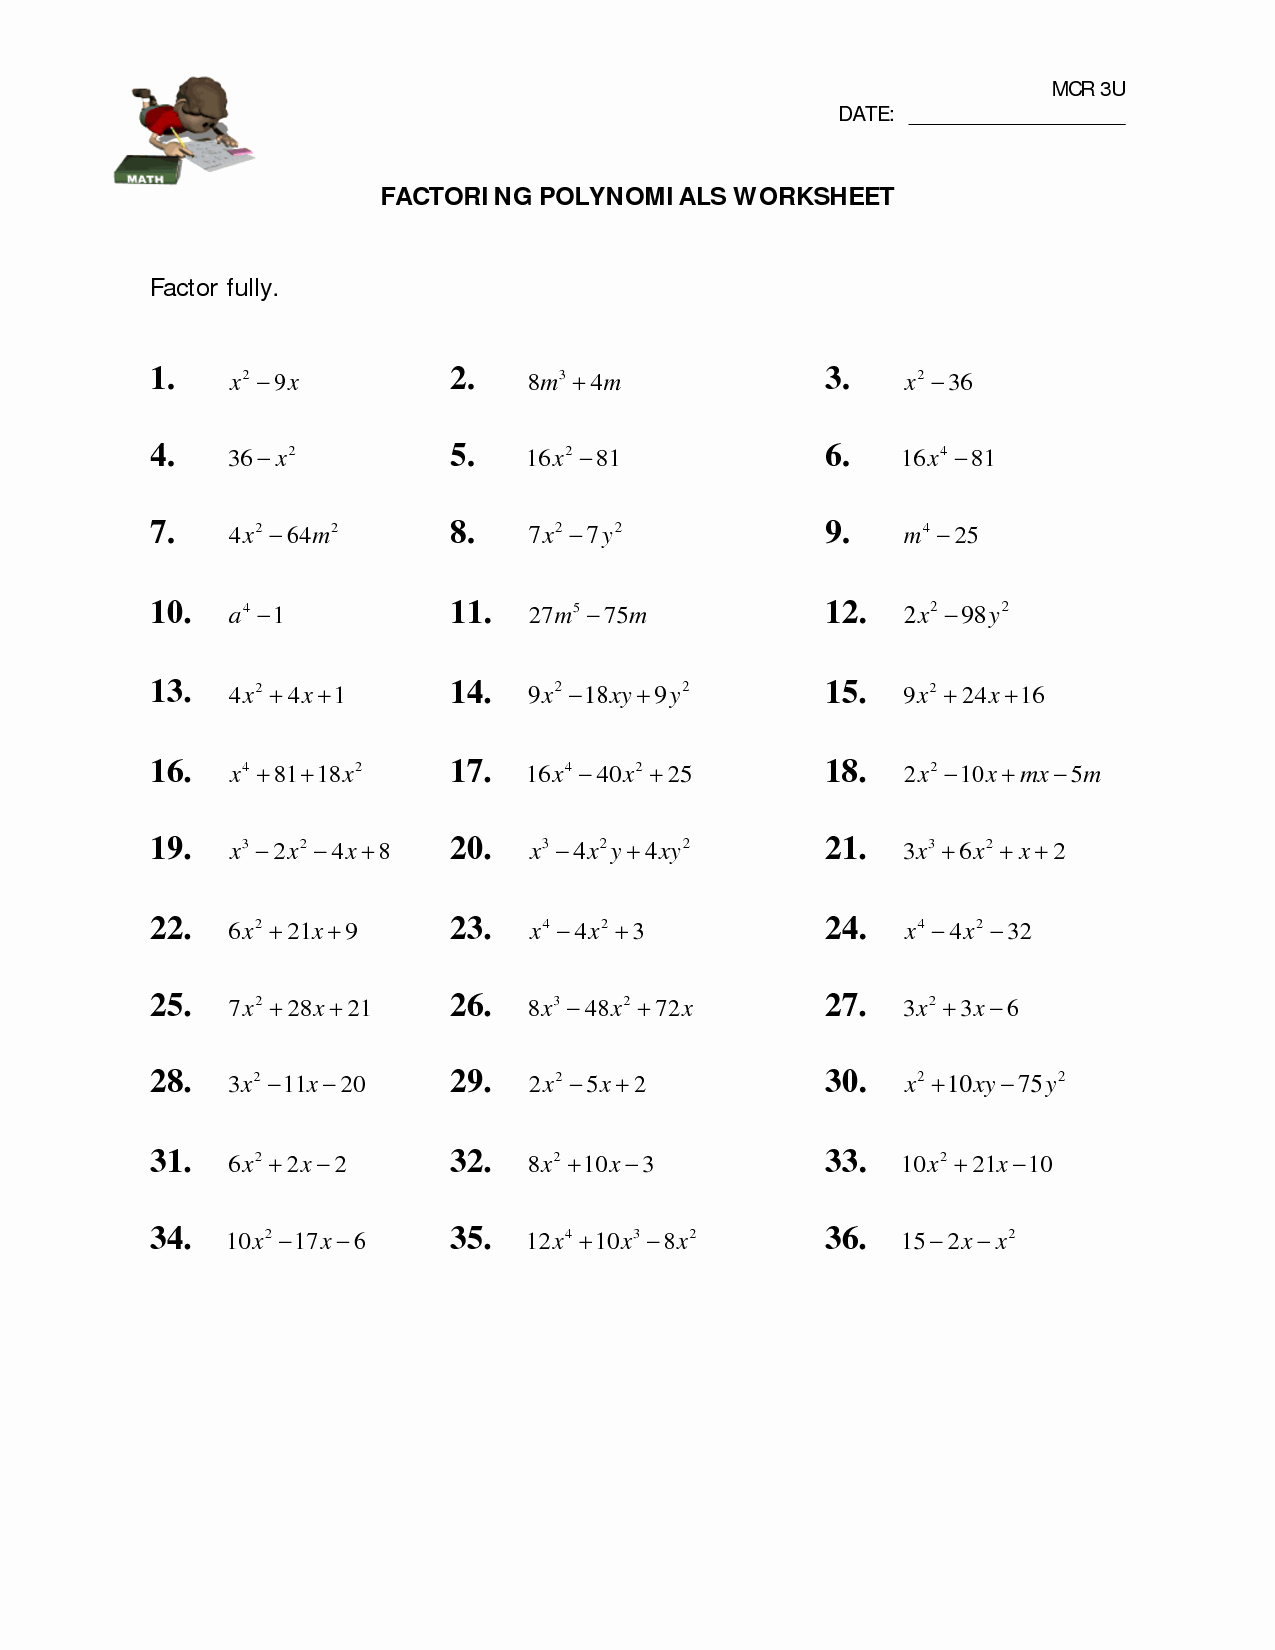 Factoring Trinomials Worksheet Algebra 2 Unique 11 Best Of Factoring Worksheets Algebra Ii